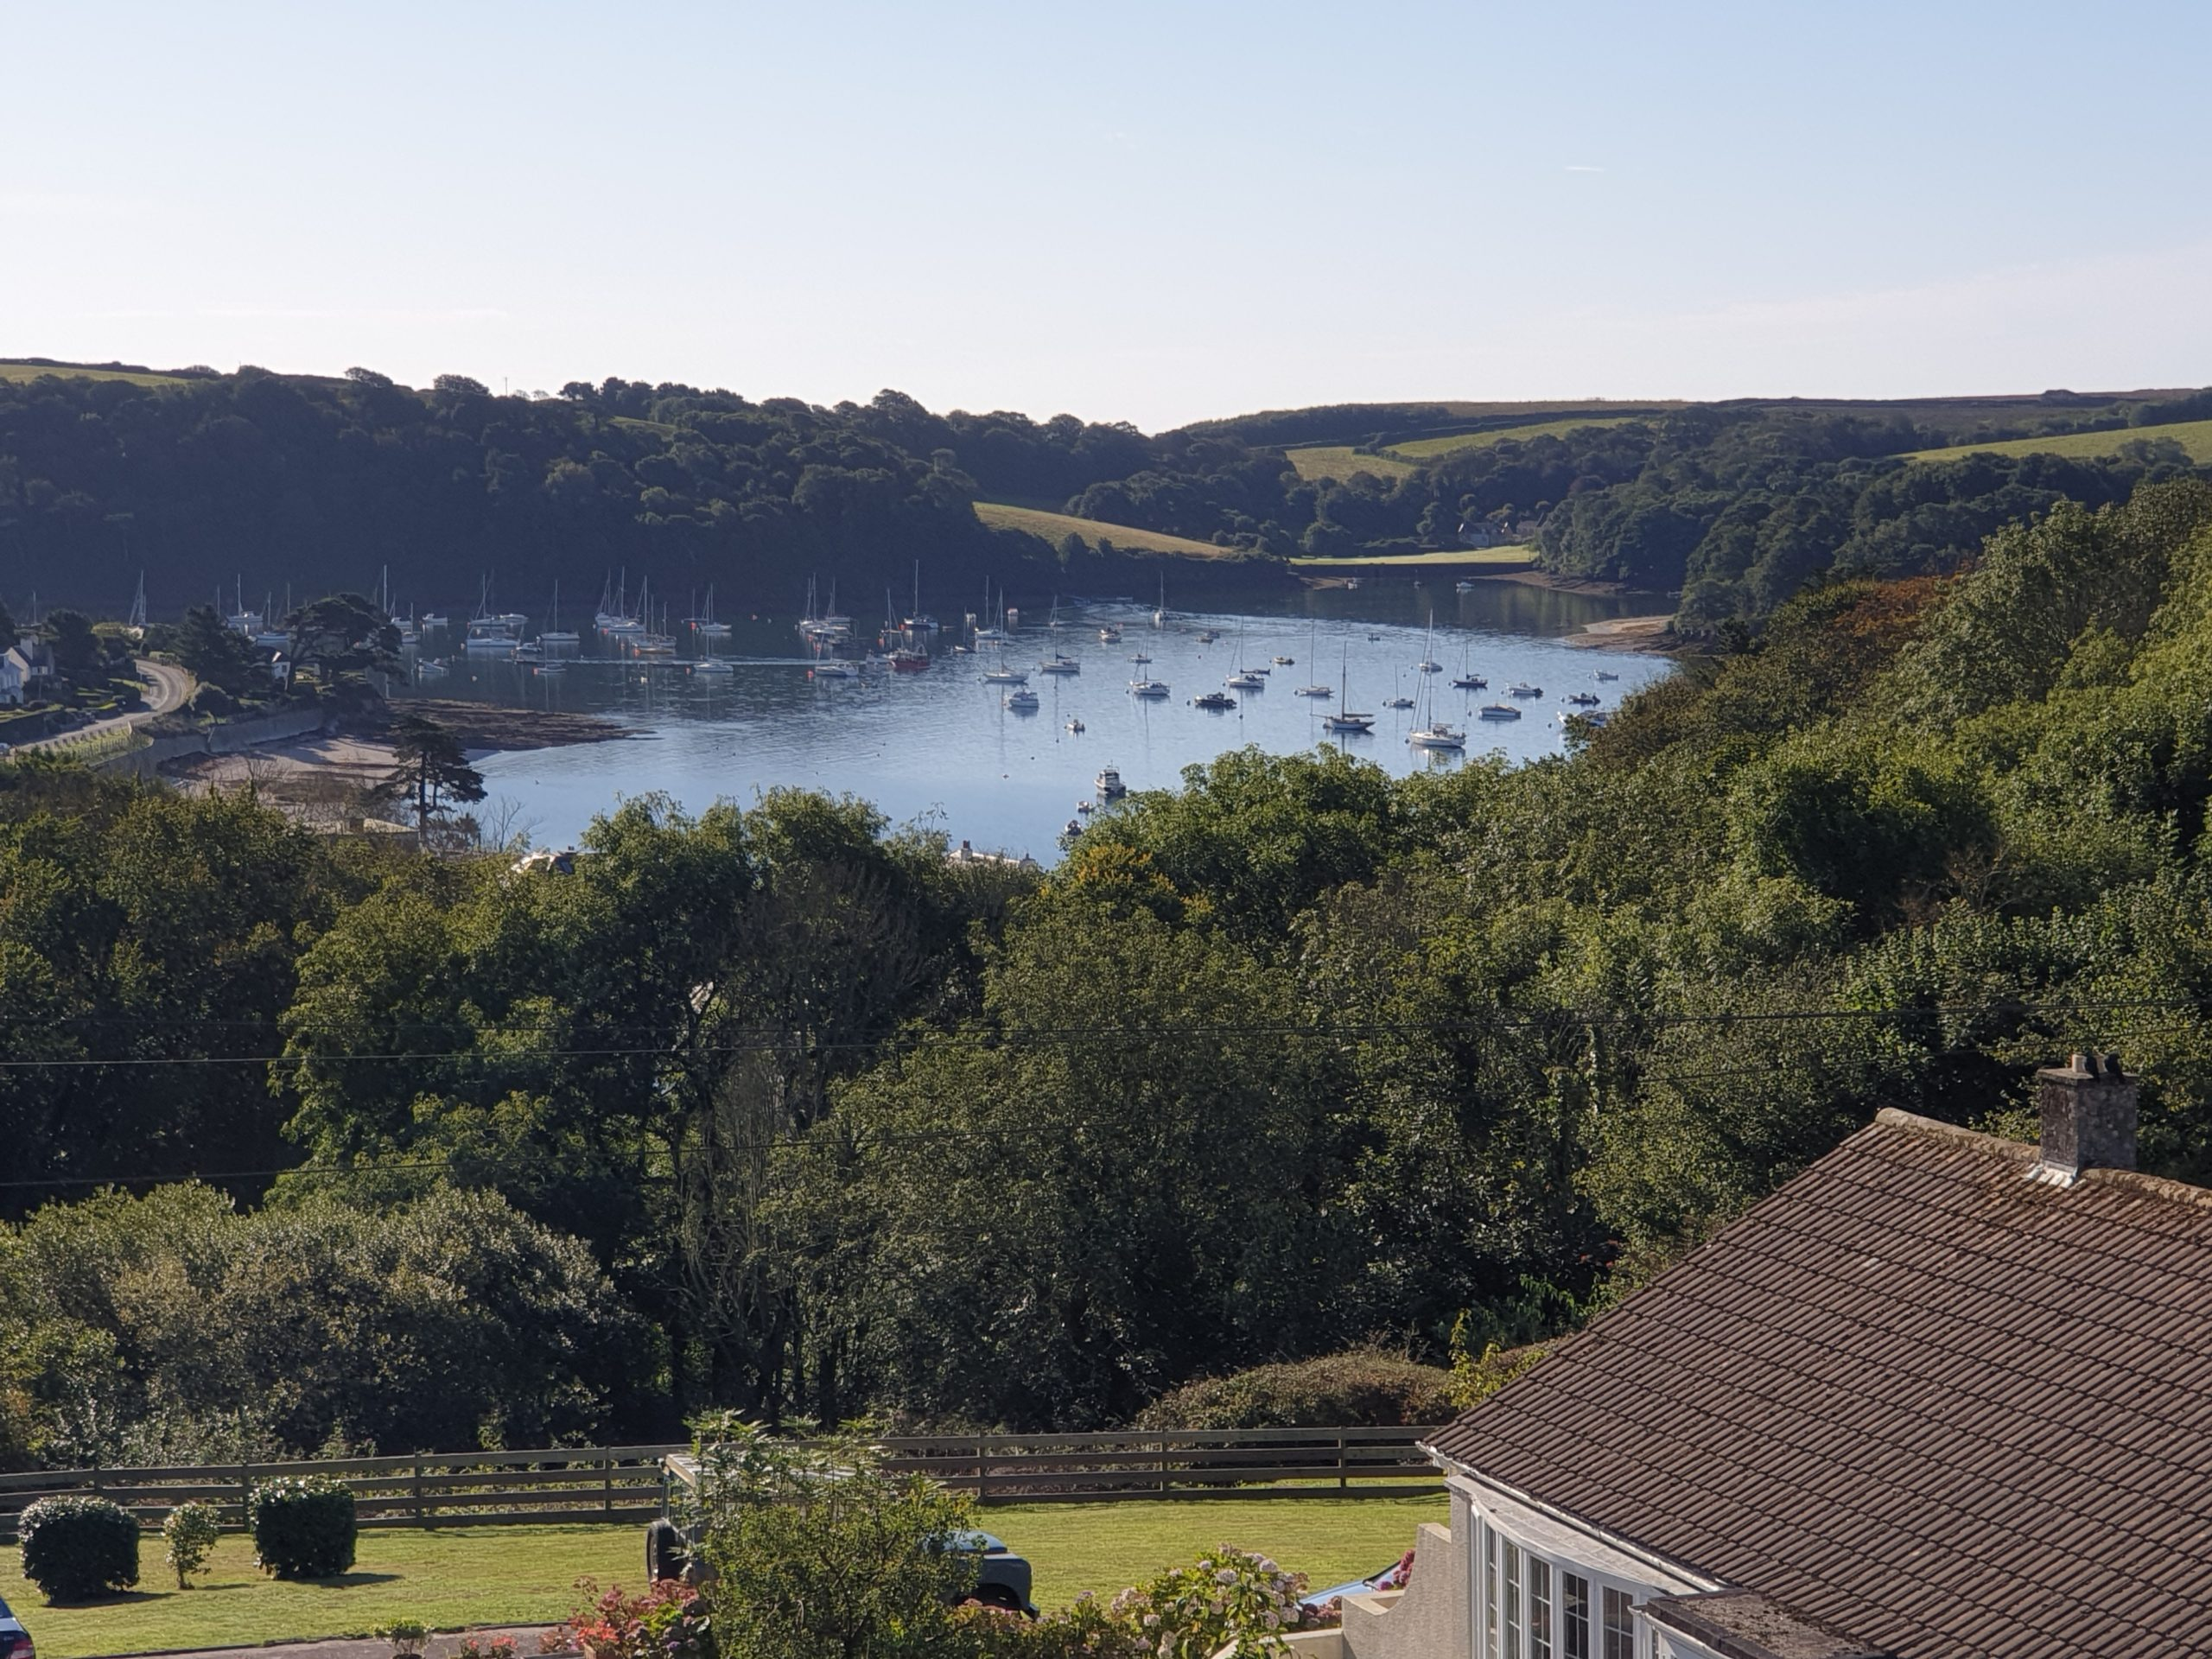 Cream, Cafes & Cycloramic Captures of Cornwall